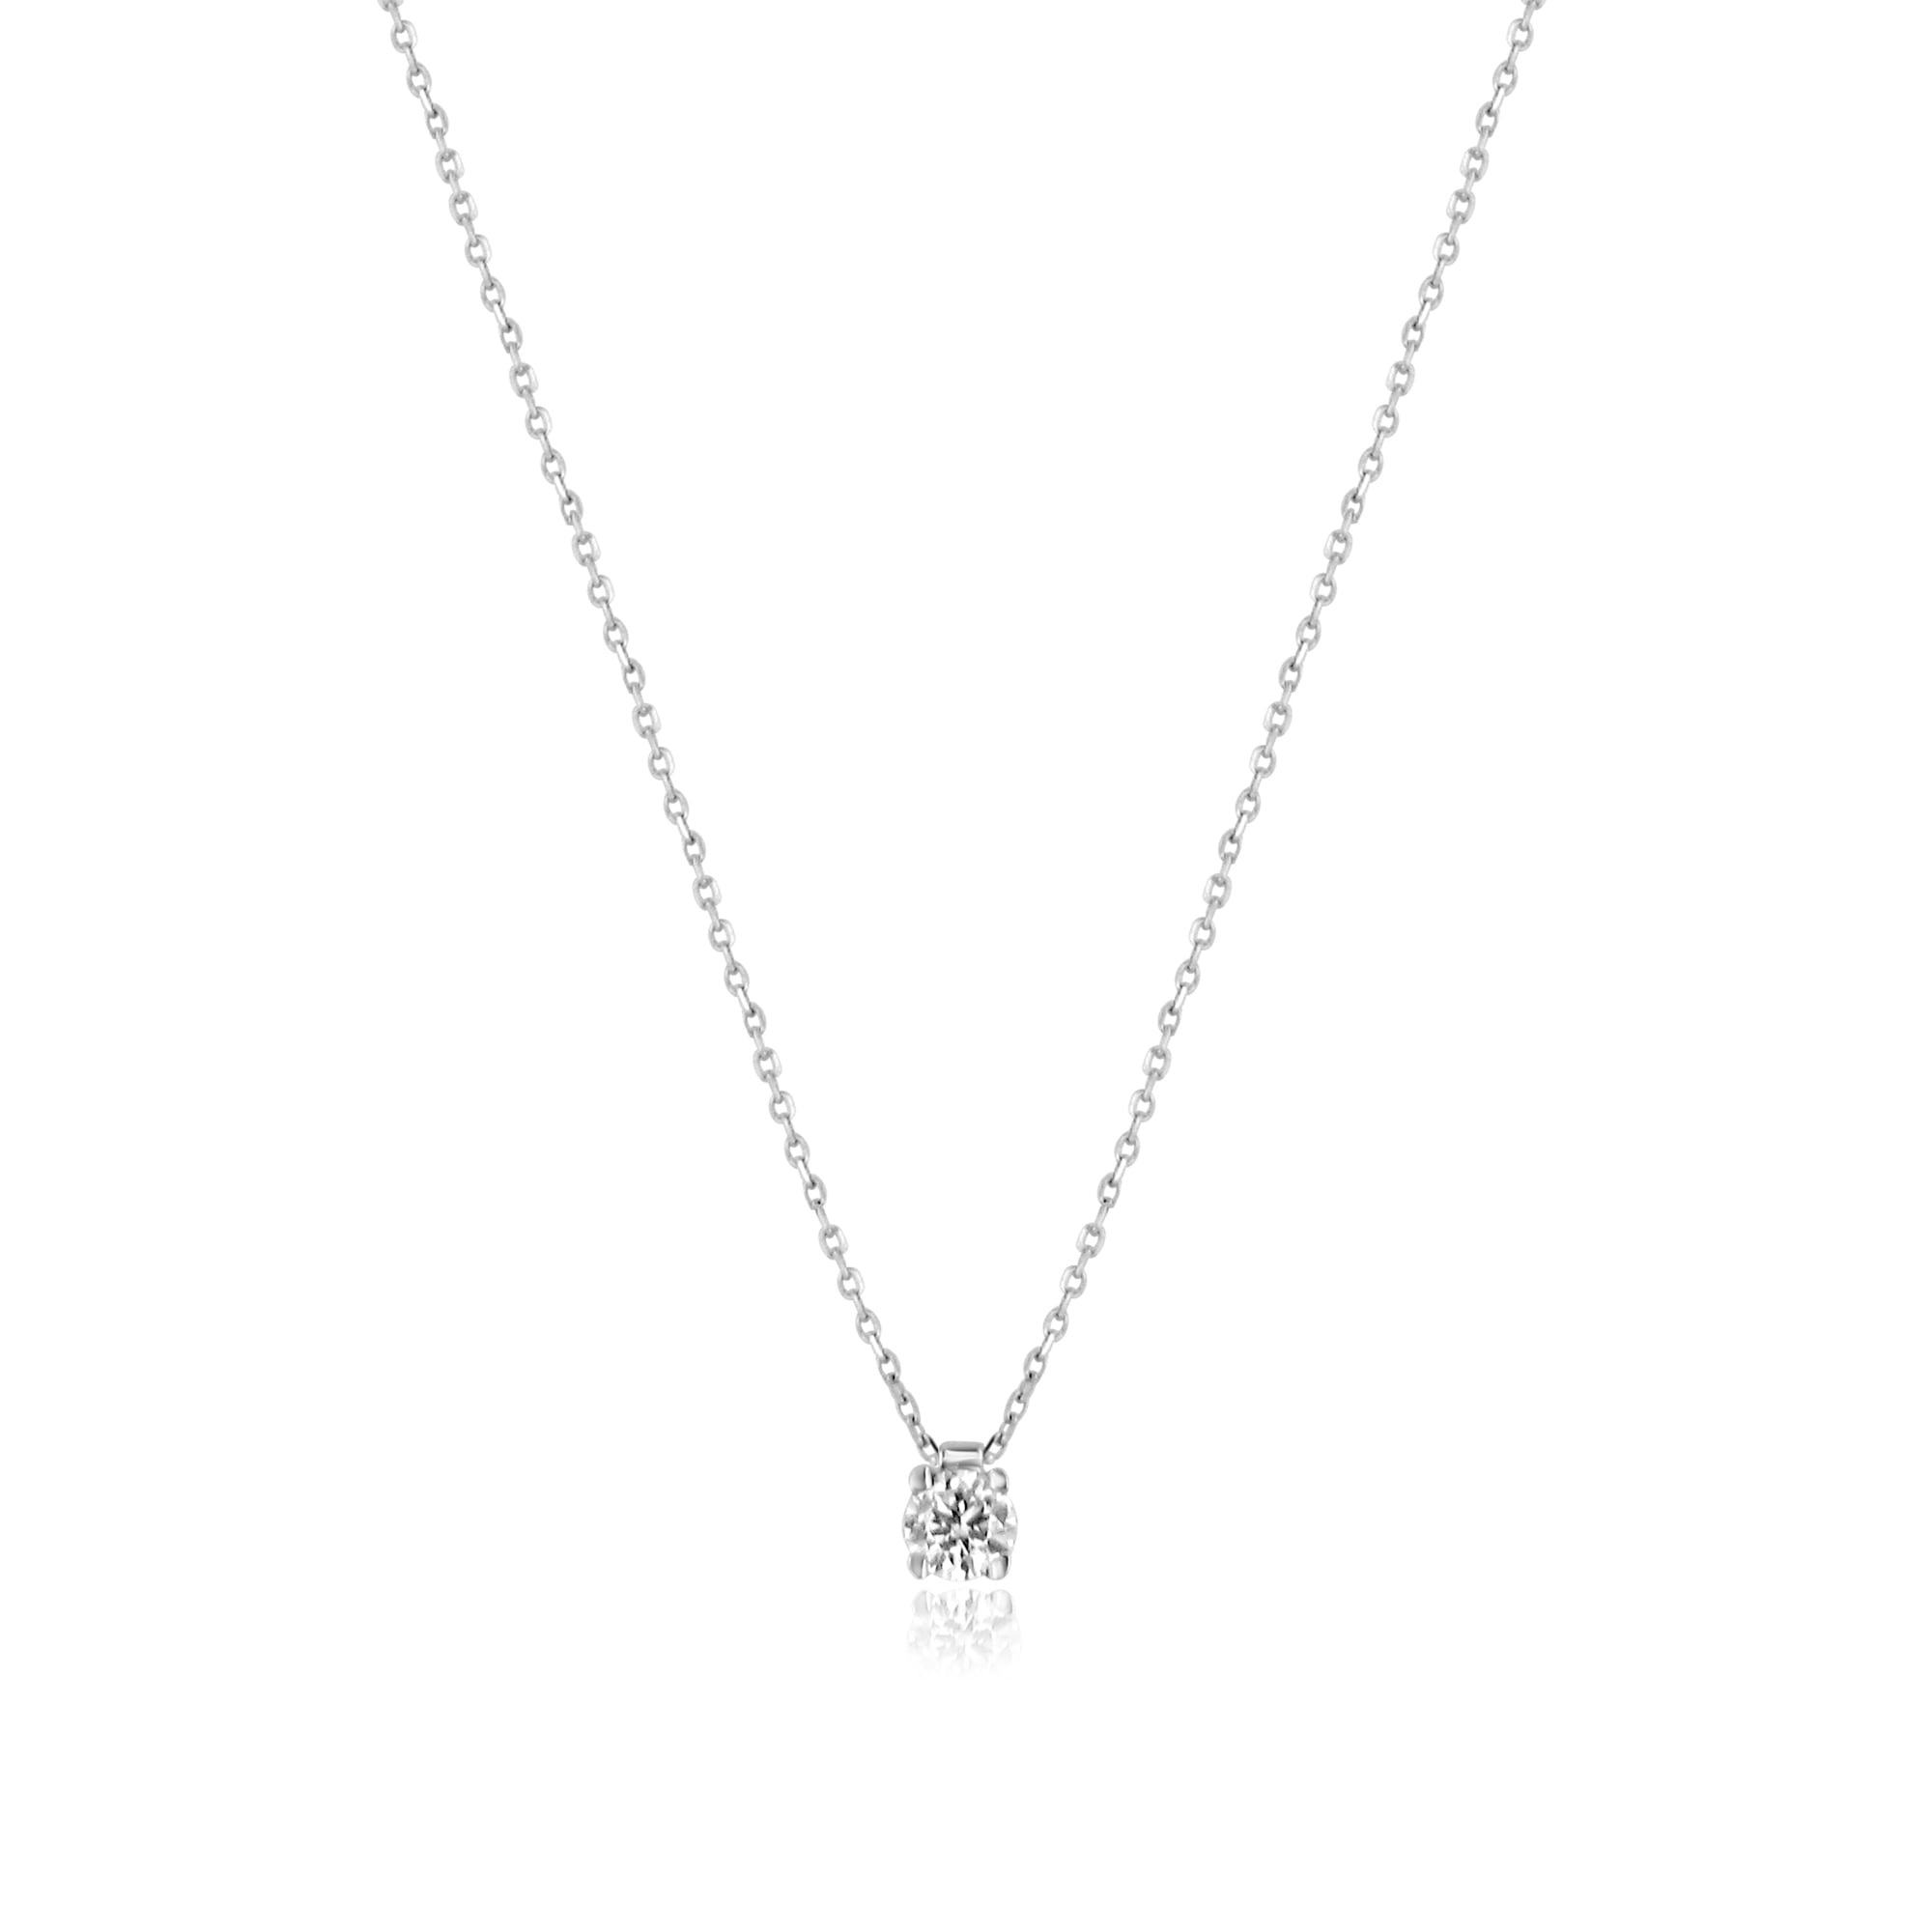 e11375d2b2bc3b Delicate Necklace With a 0.30ct Round Diamond - Womens from Avanti of  Ashbourne Ltd UK